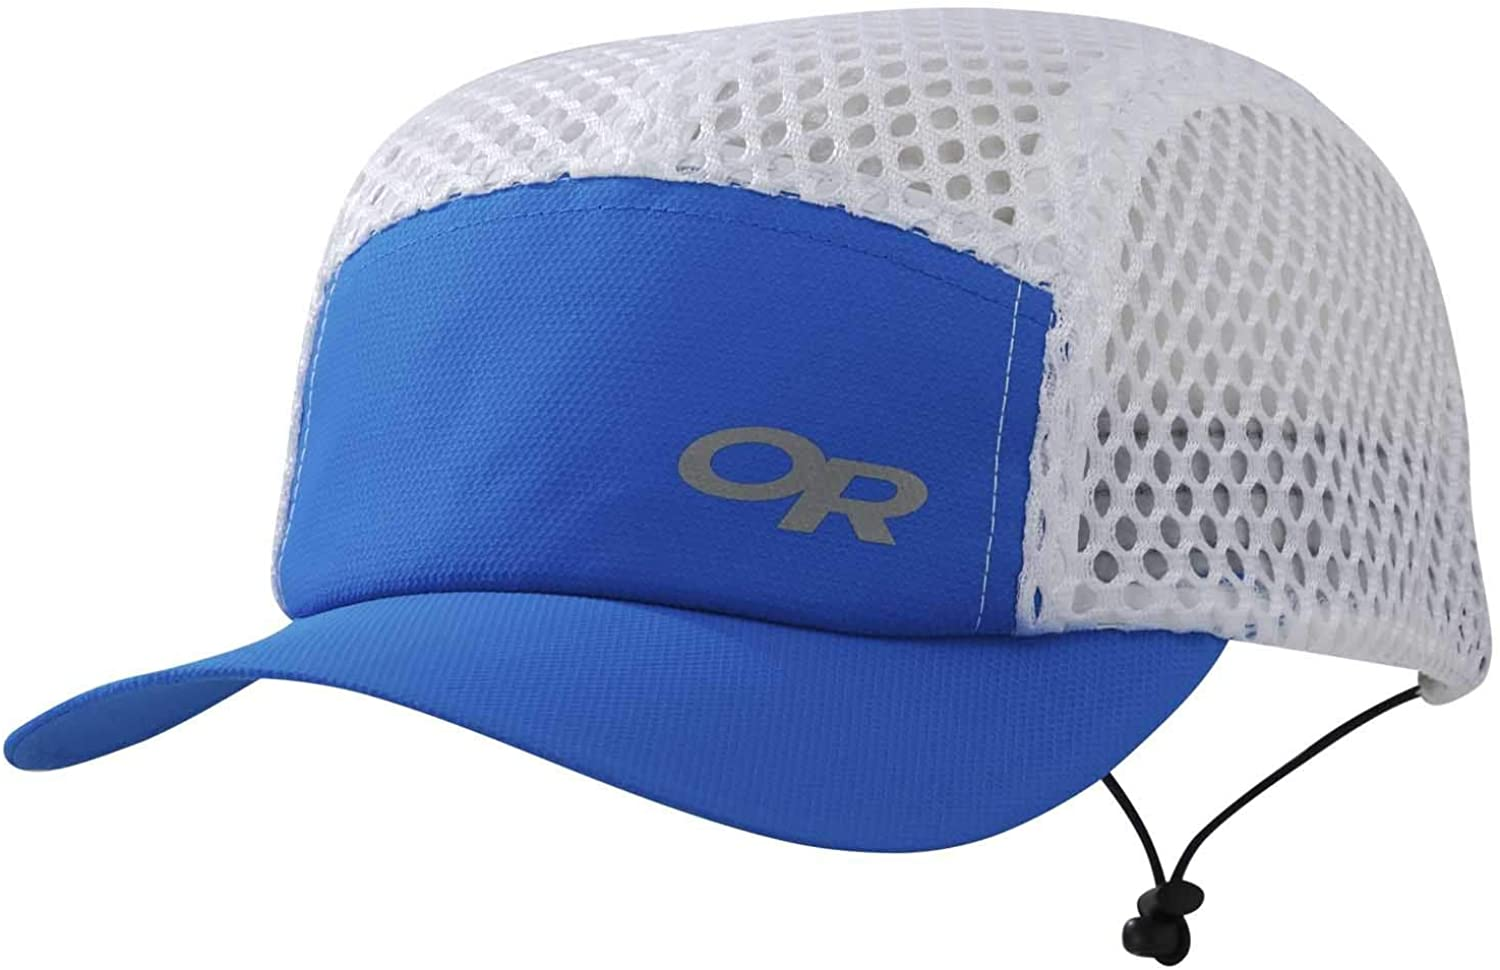 Outdoor Research Vantage Air Vented Breathable Ultralight Sun Cooling Cap